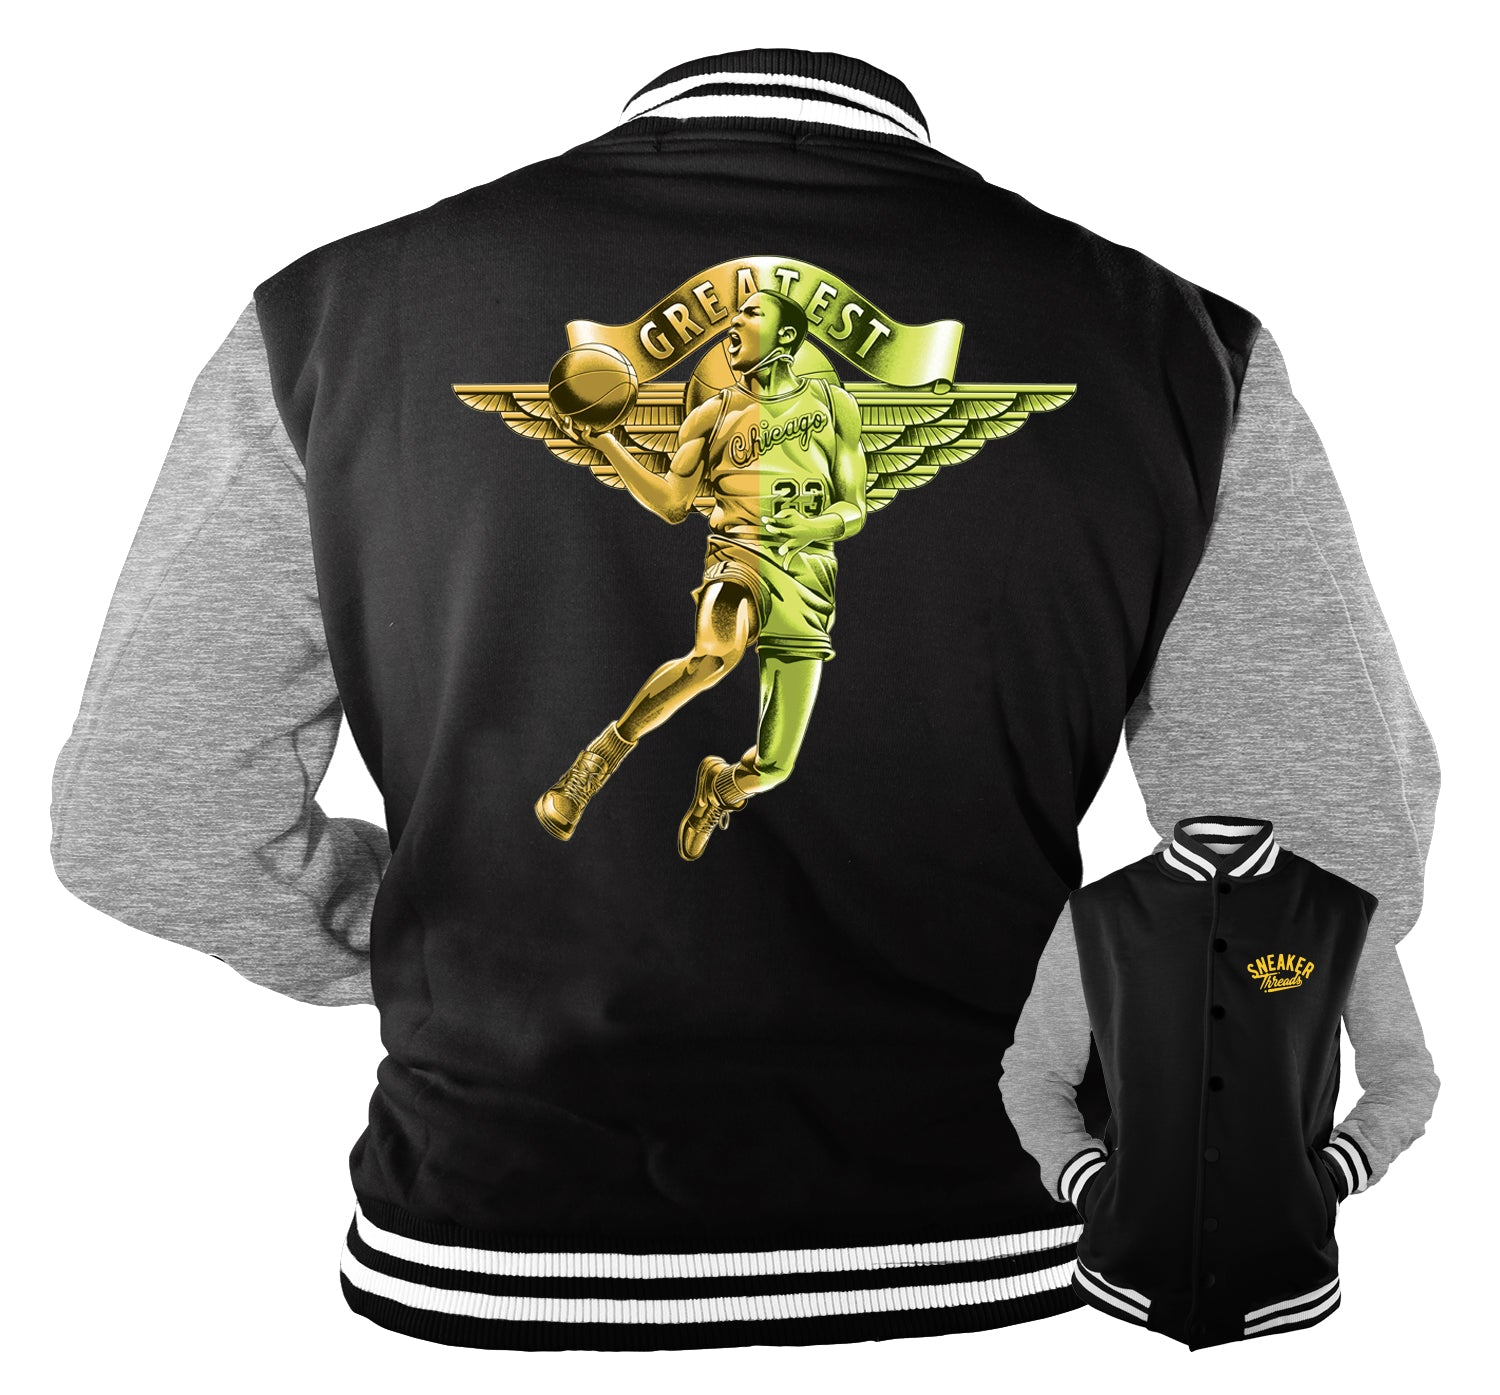 Jacket Collection designed to match the Jordan 1 volt gold sneakers